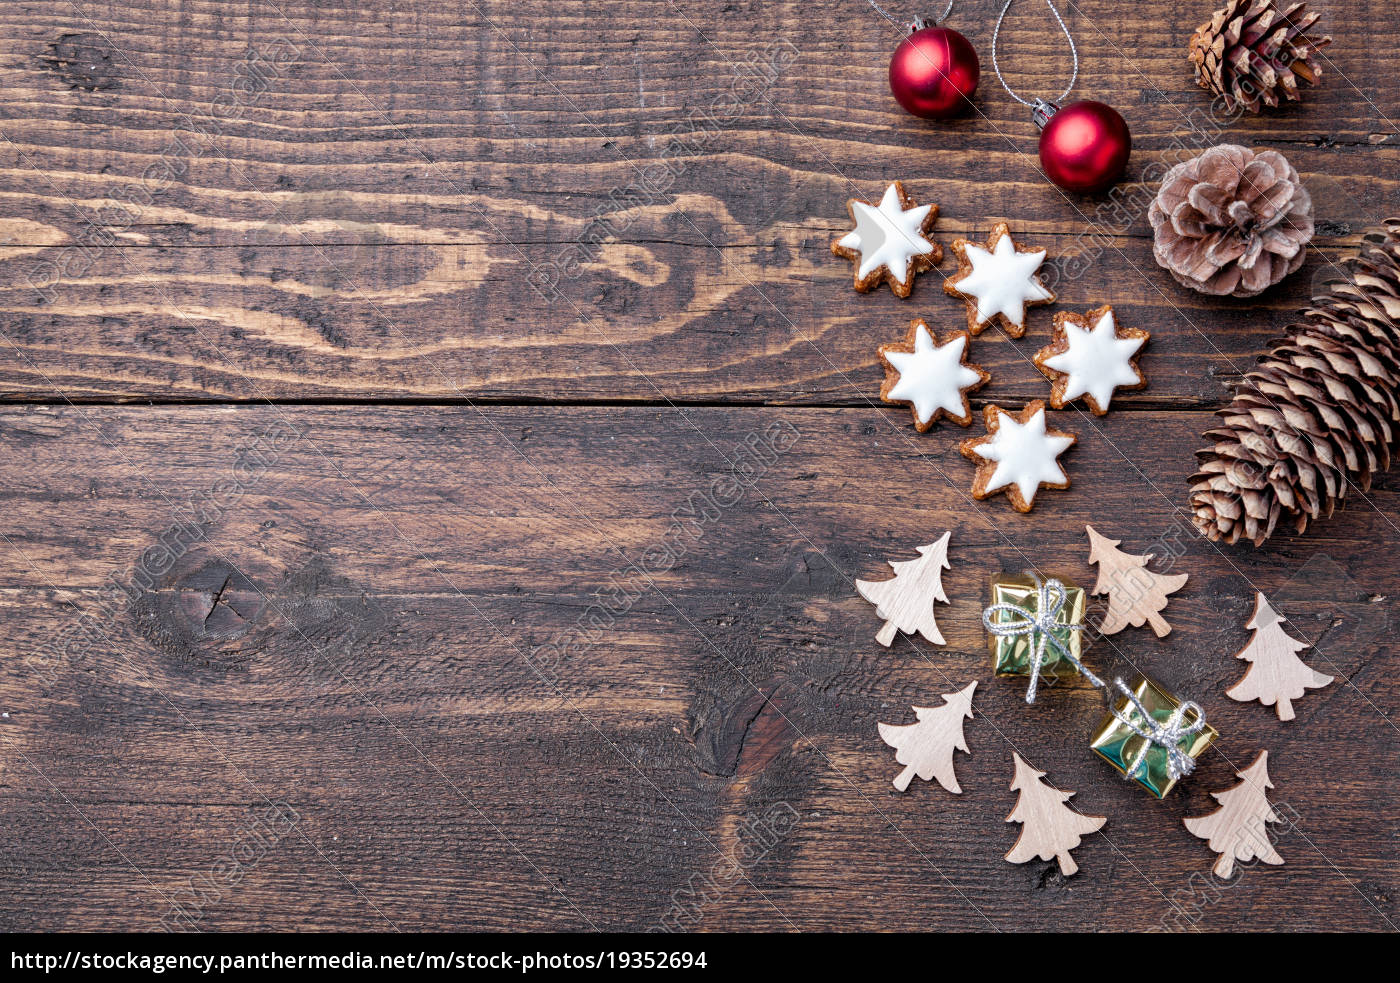 Christmas Wood Background.Royalty Free Image 19352694 Christmas Decoration On Wooden Background With Copy Space